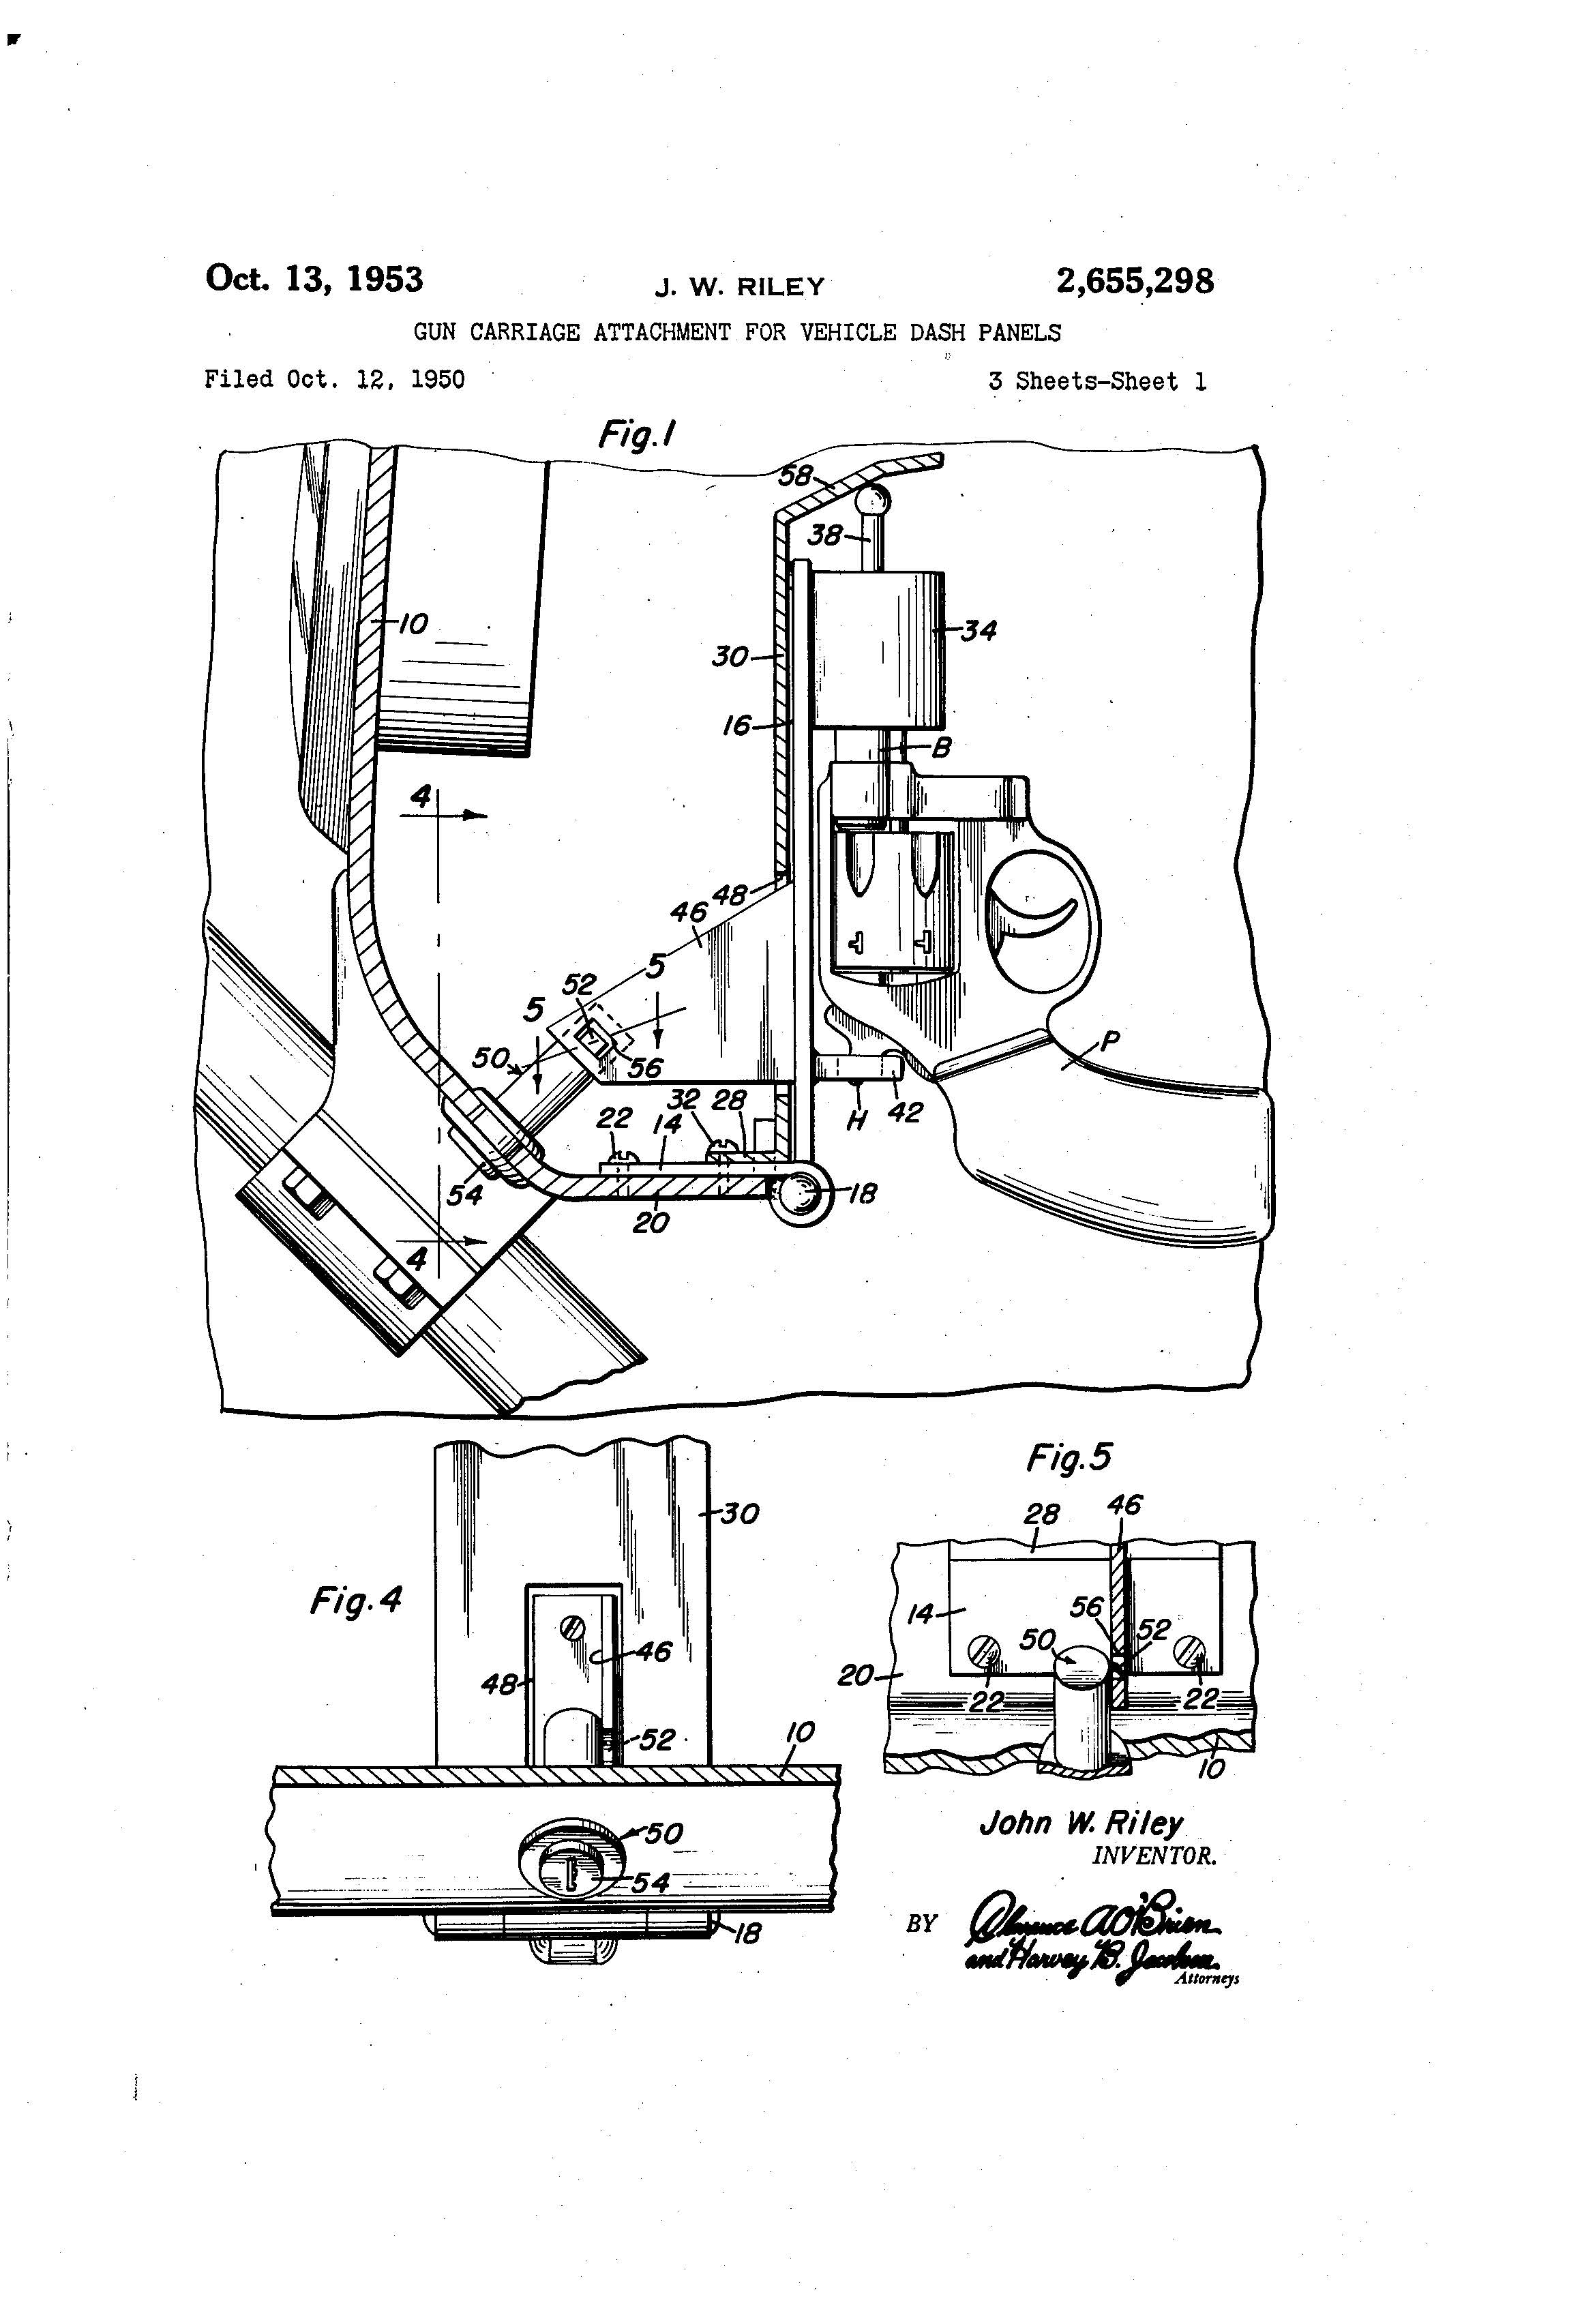 Patent of the Day: Gun Carriage Attachment for Vehicle